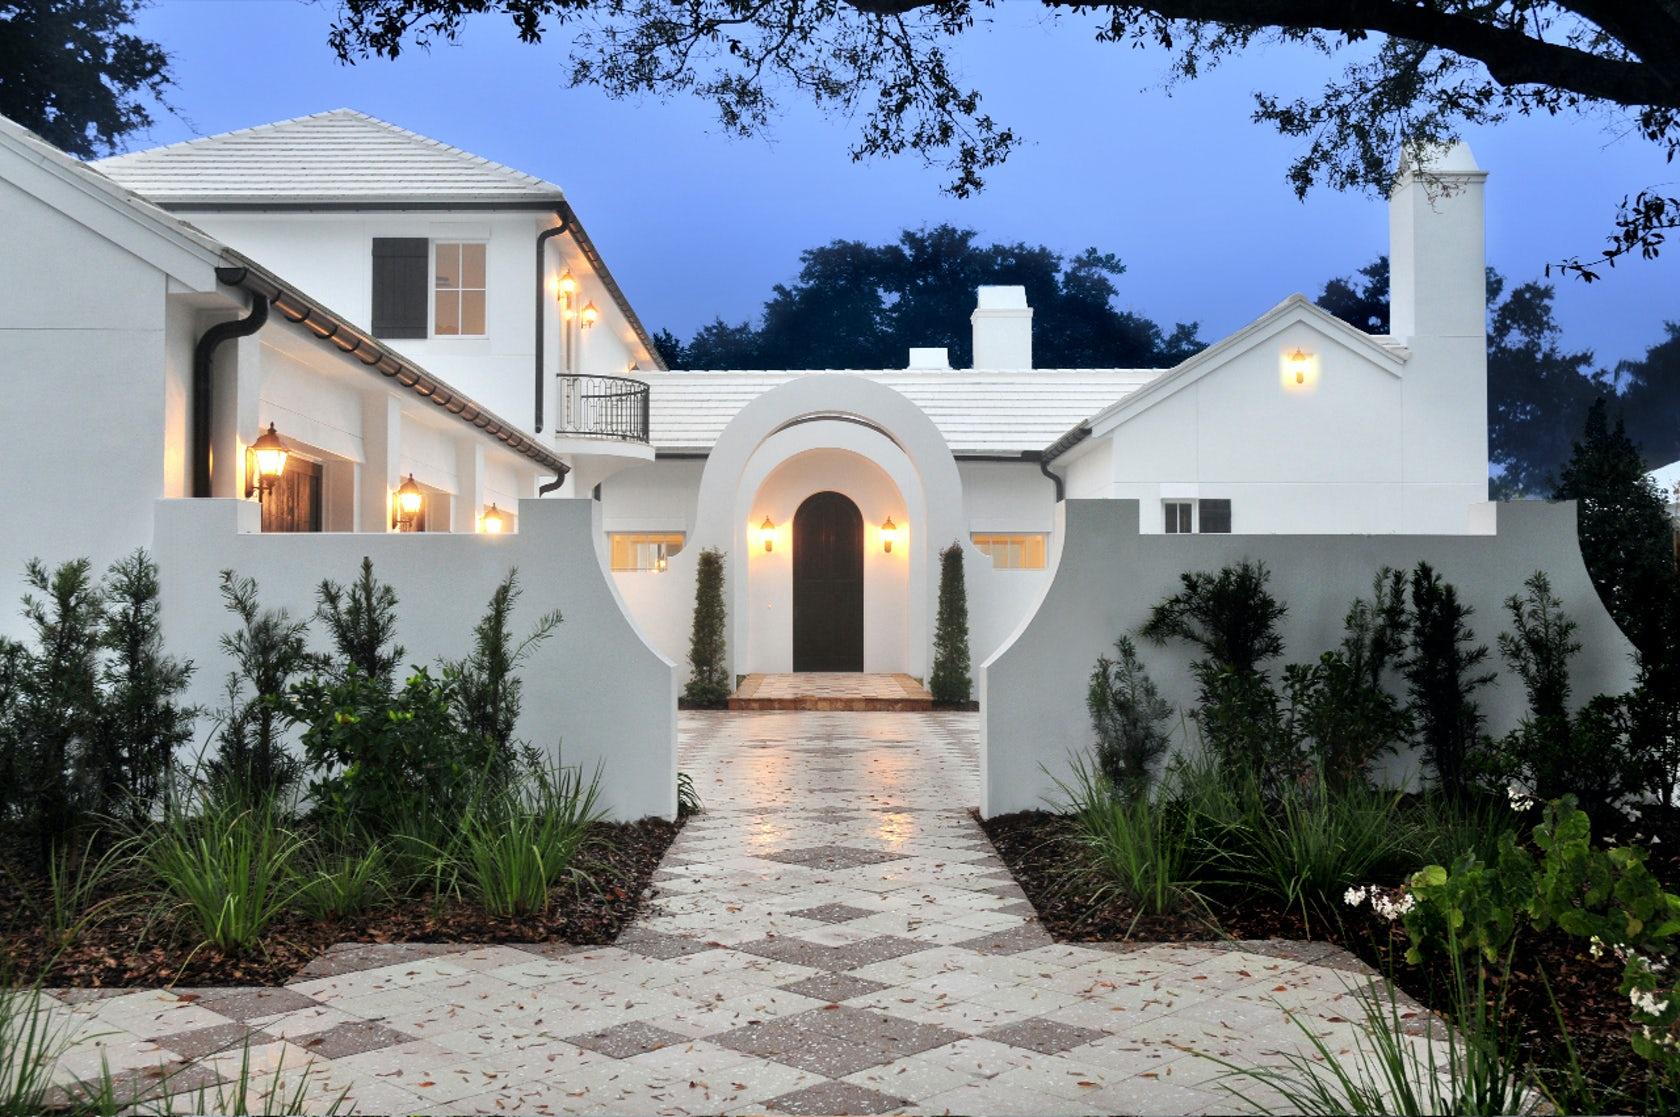 Solstice planning and architecture architizer for Florida stucco